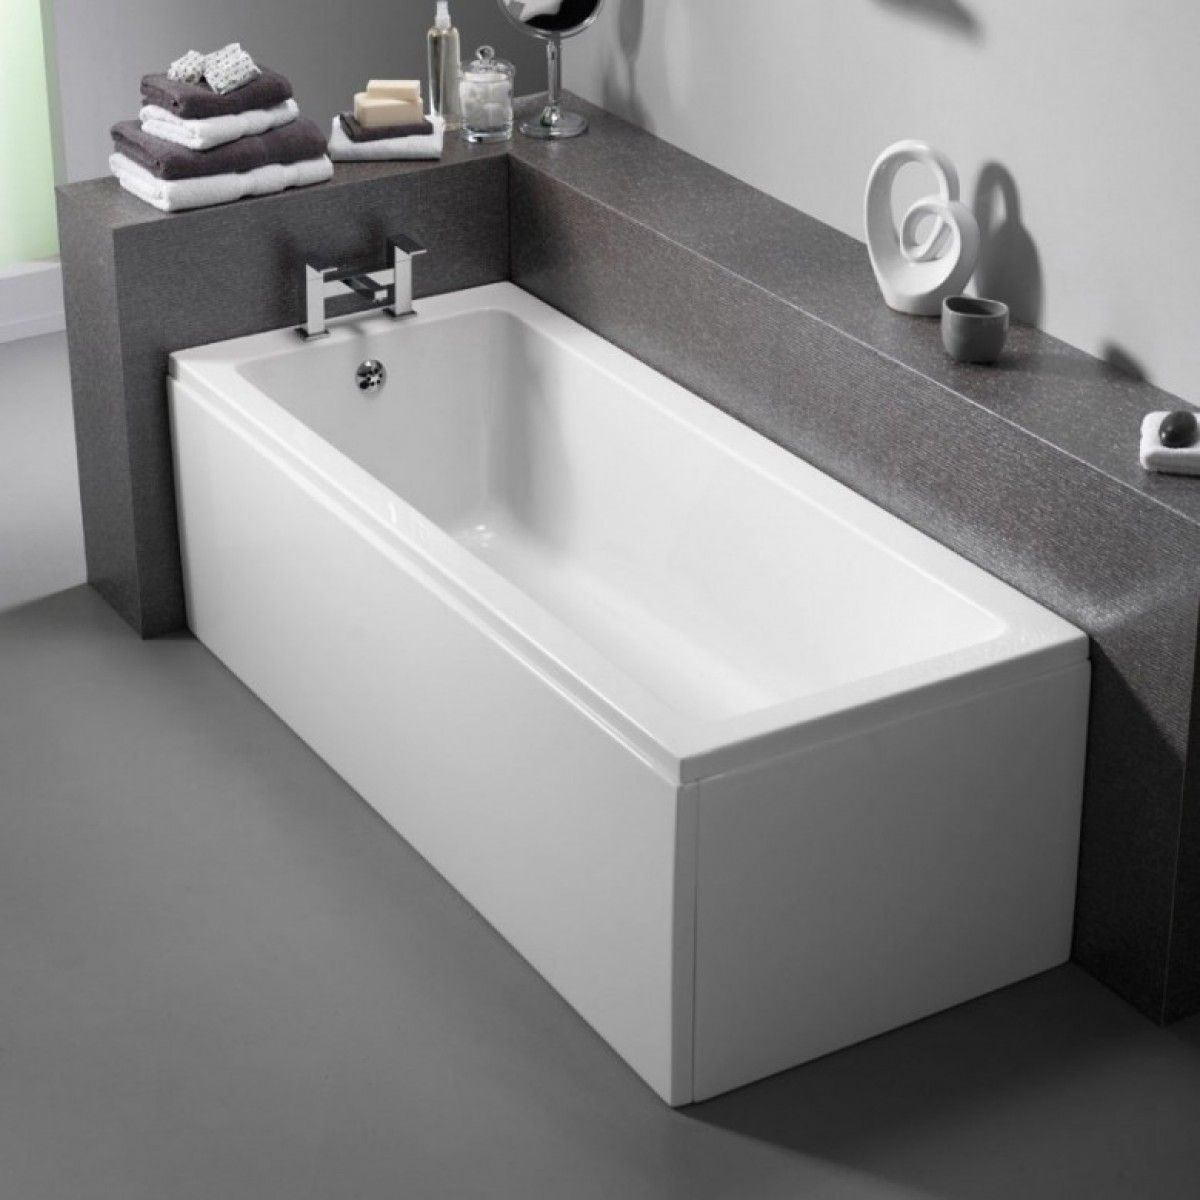 Single ended bath made from Acrylic Lucite for comfort and strength ...